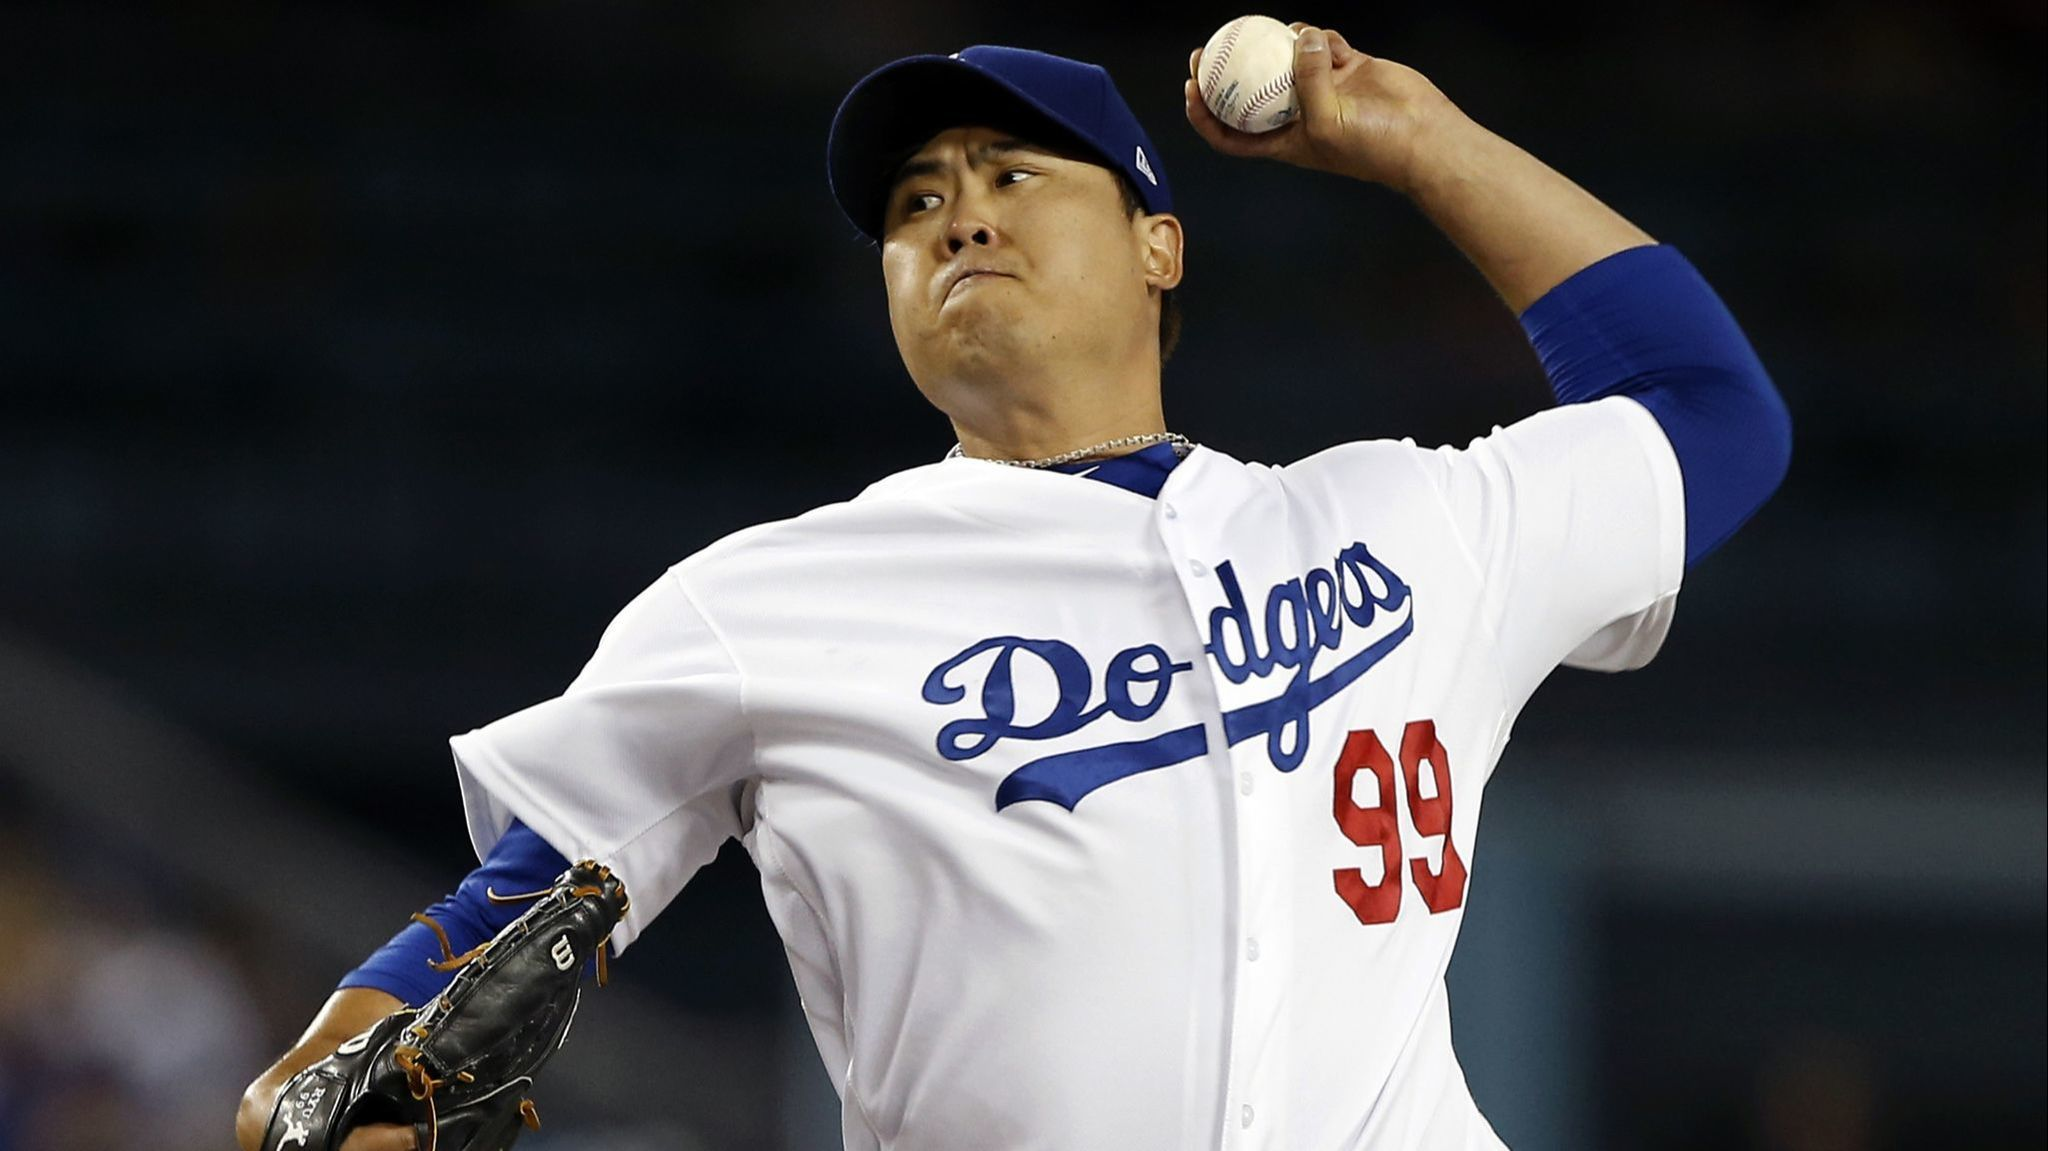 Hyun-Jin Ryu's seven scoreless innings are more than enough for Dodgers' offense as they cruise past Rockies for division lead